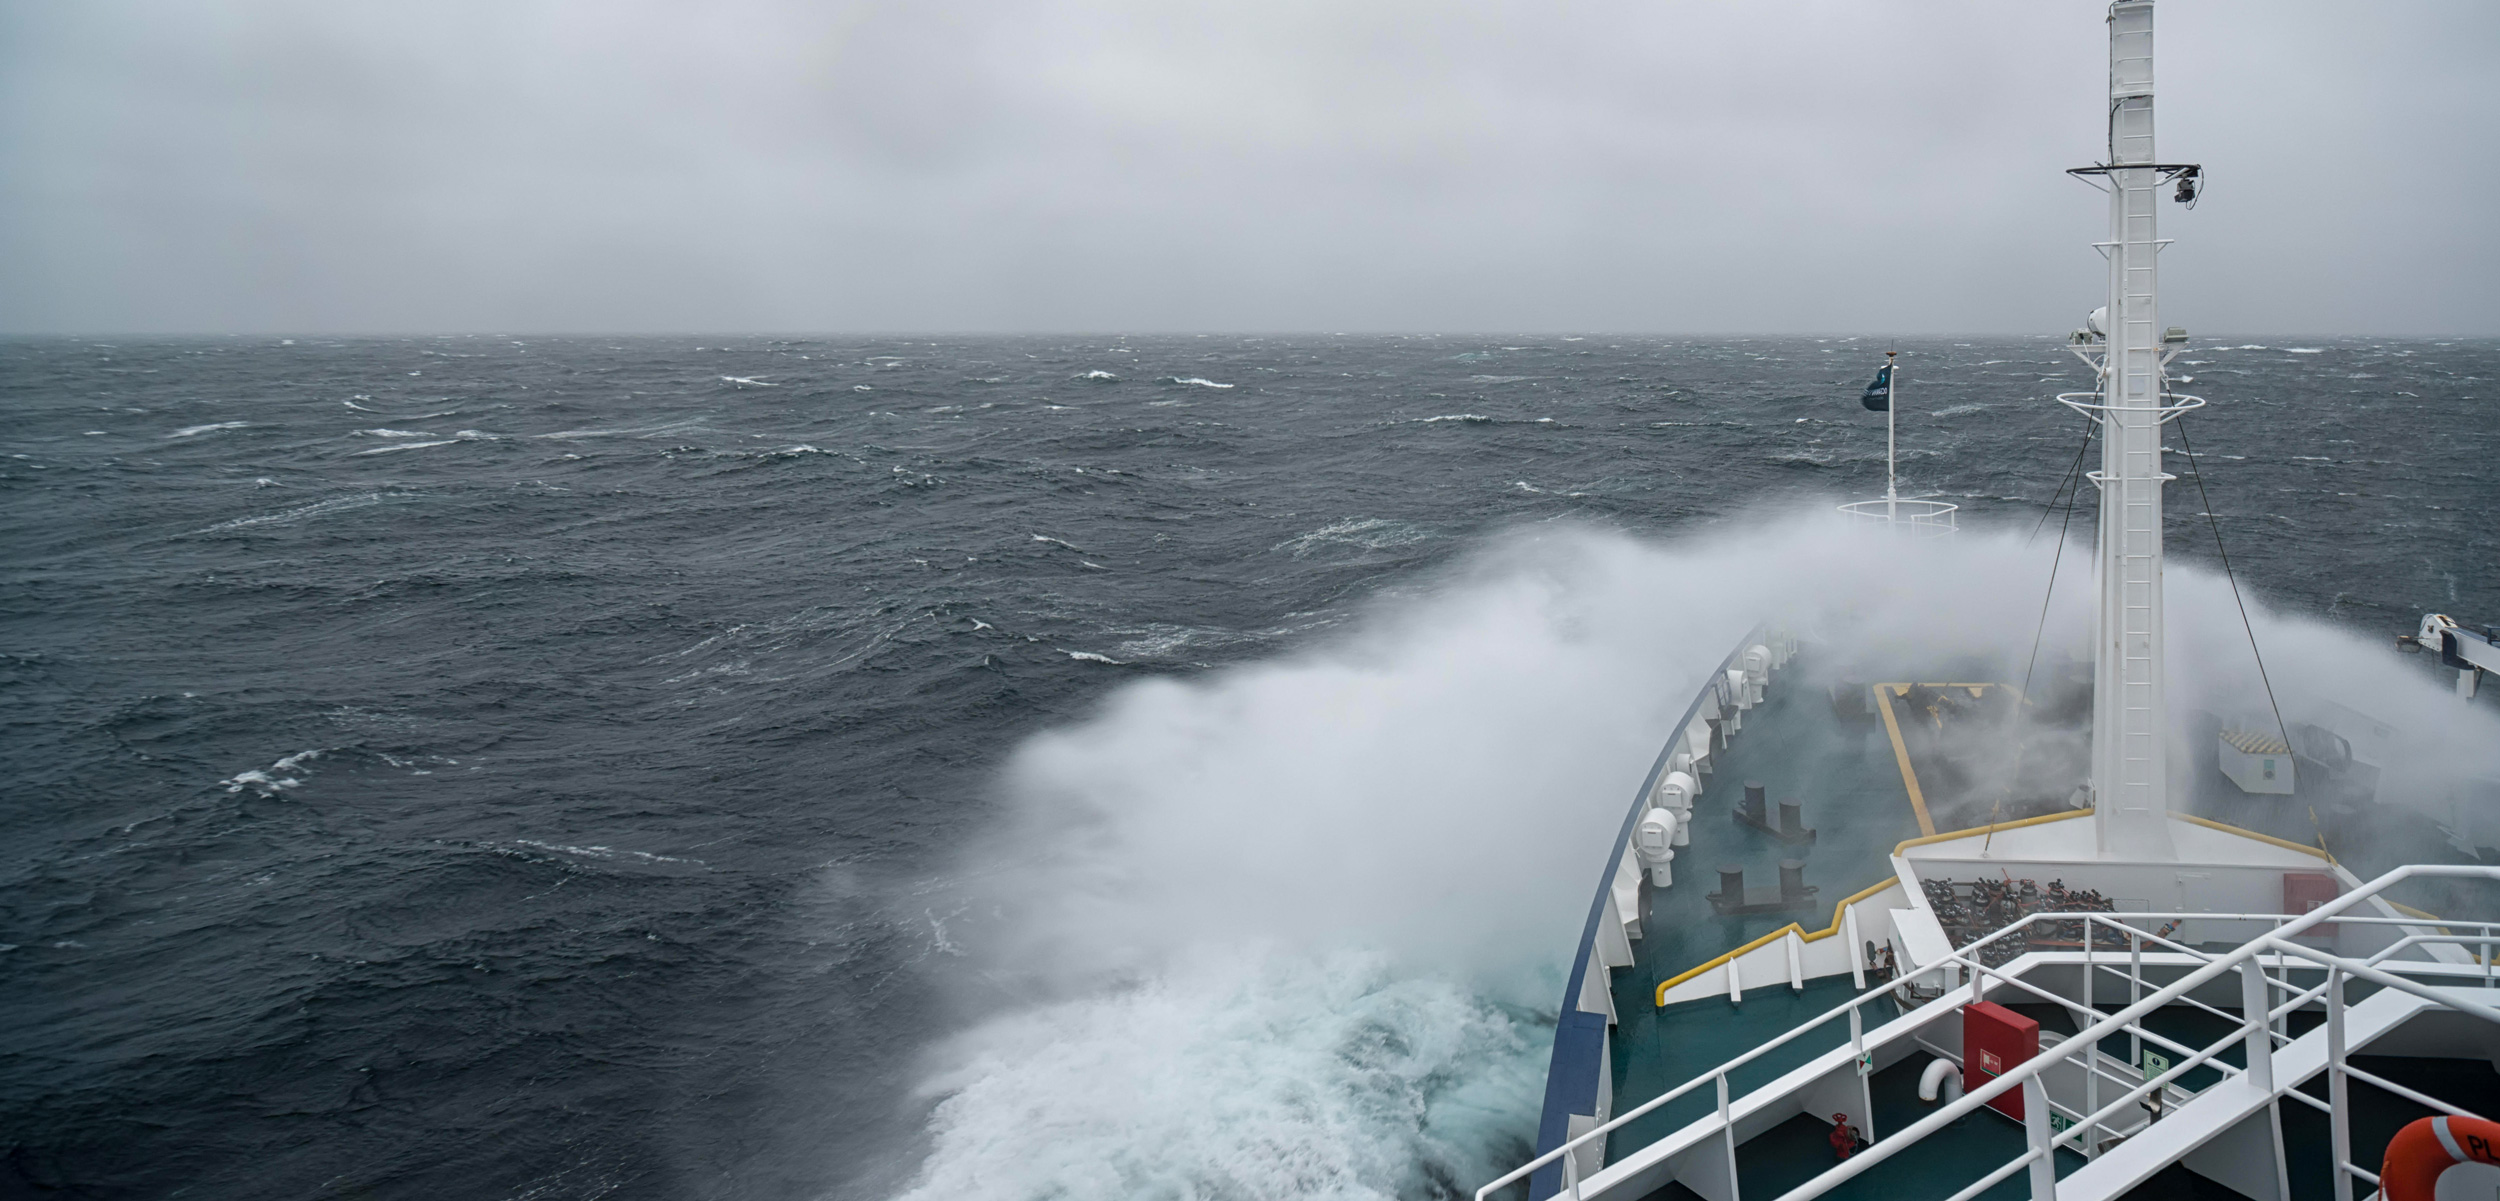 Ship cruising in storm and heavy seas